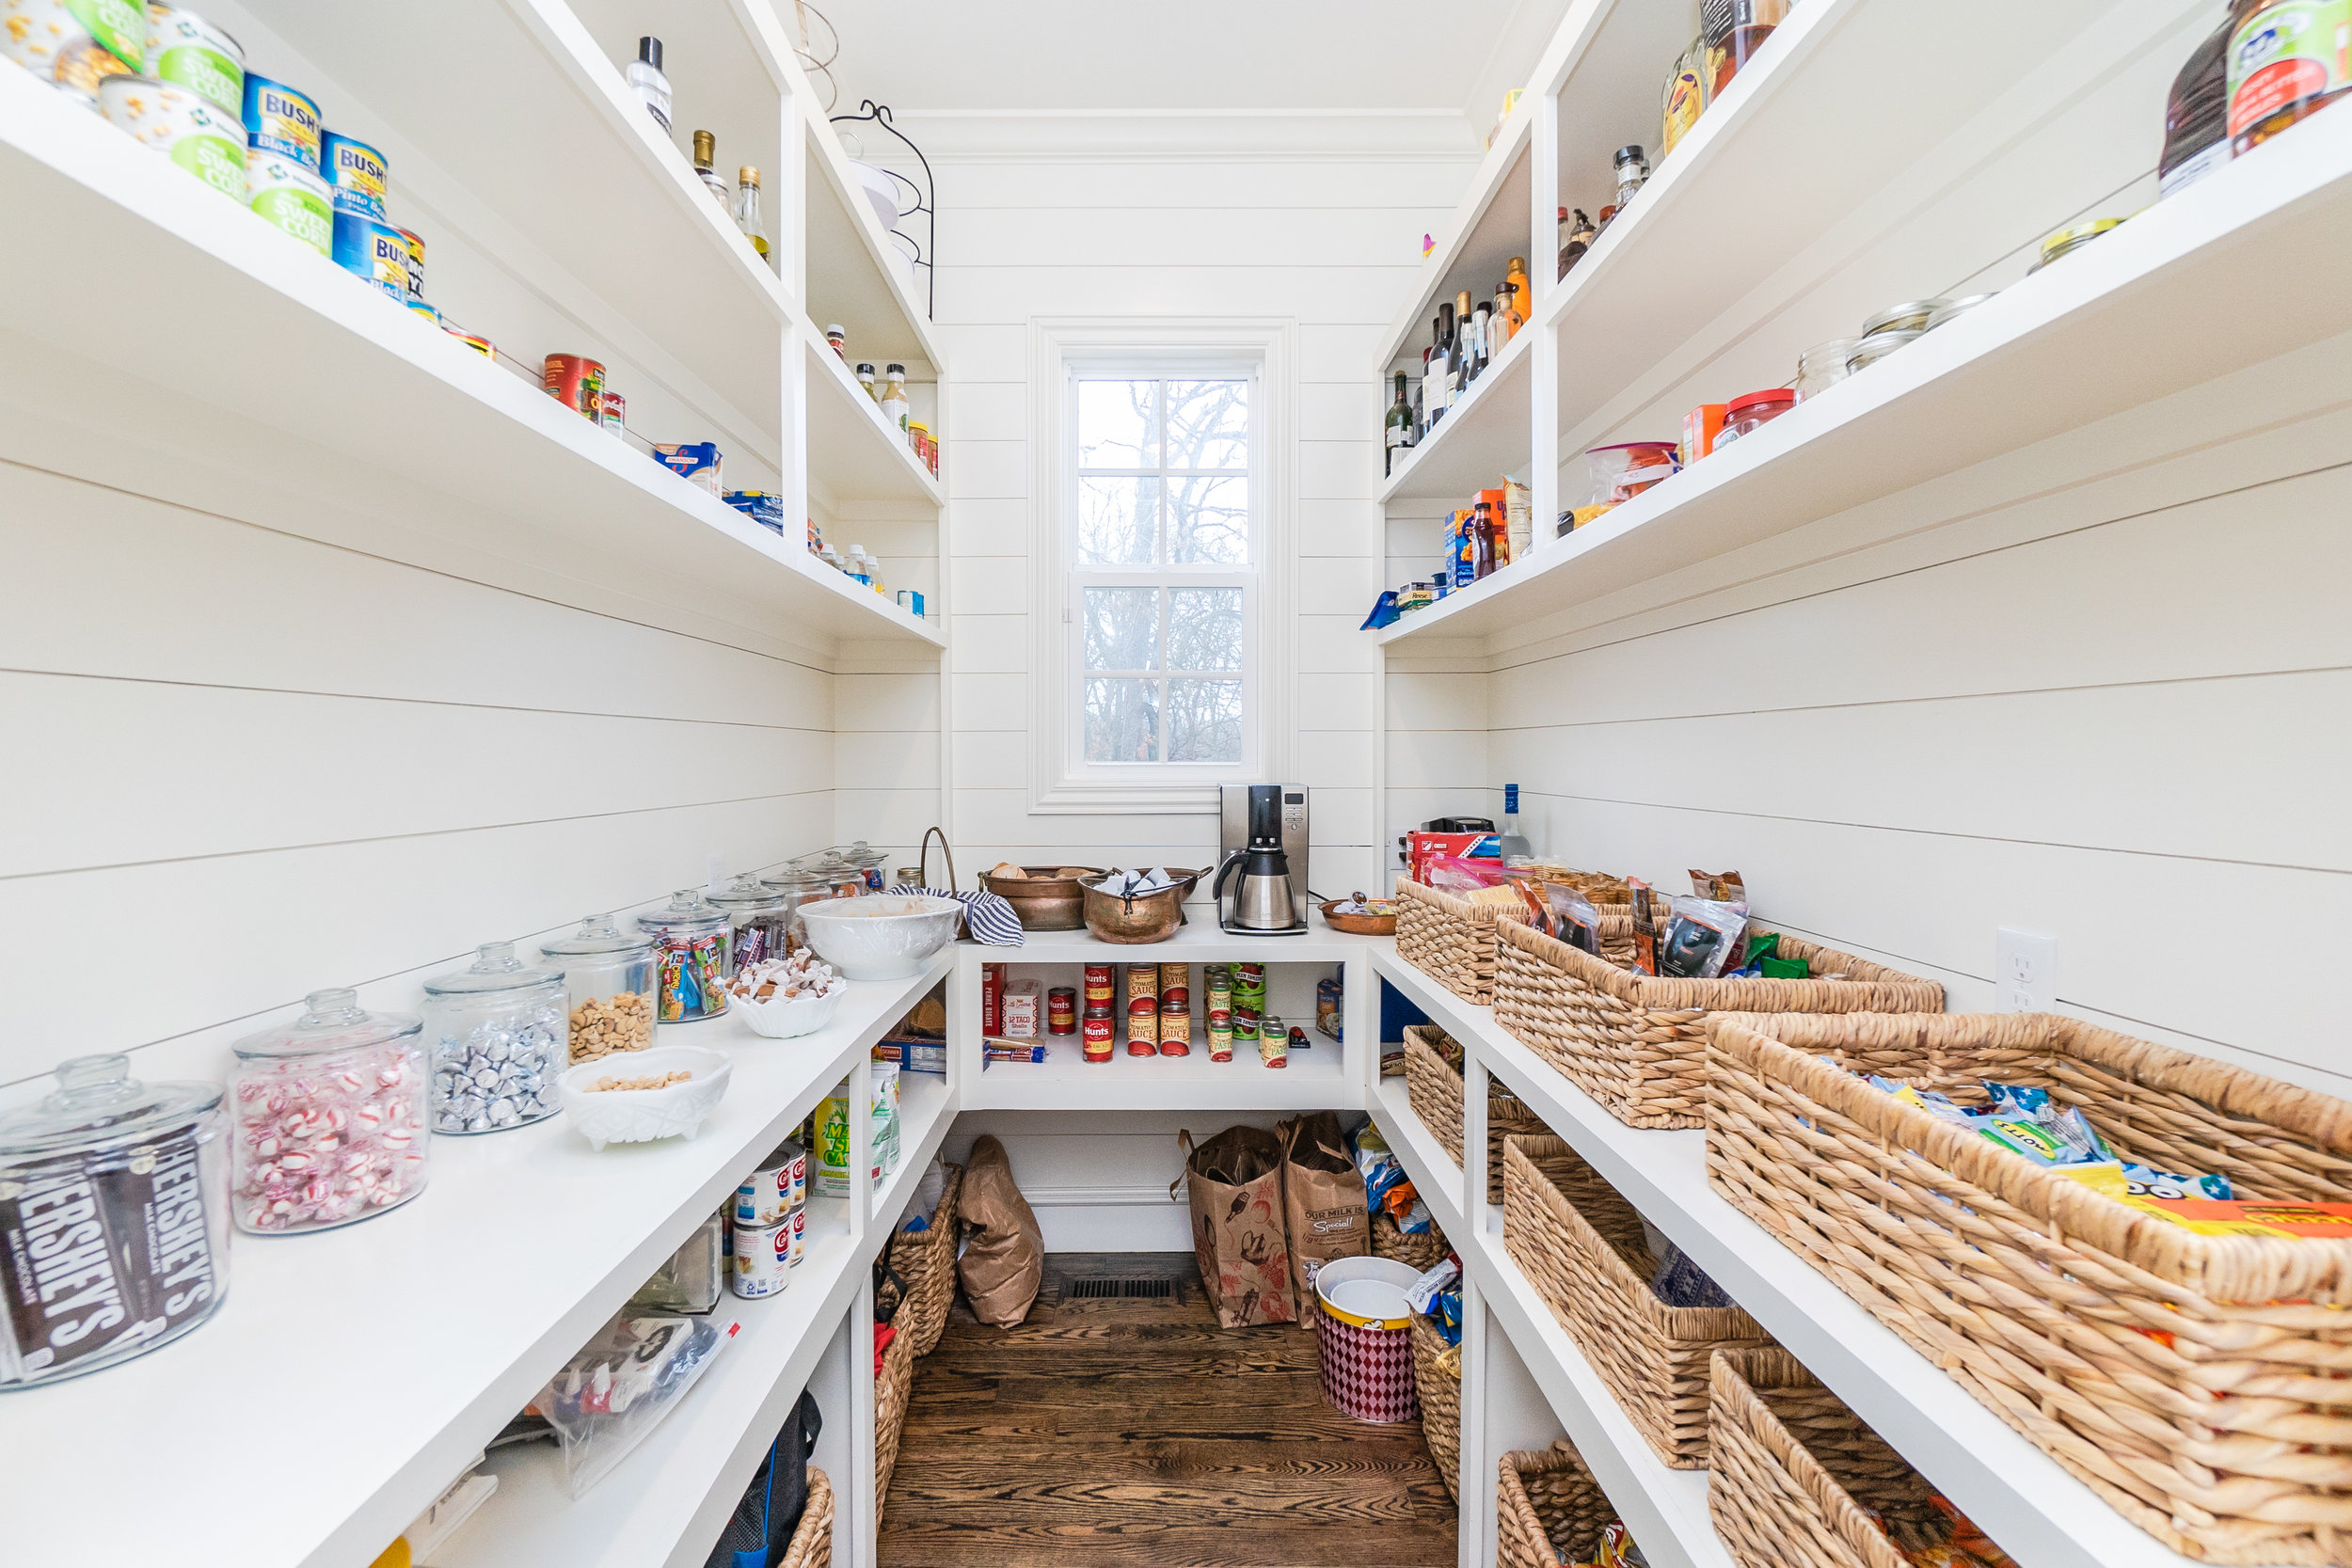 Check out this pantry!